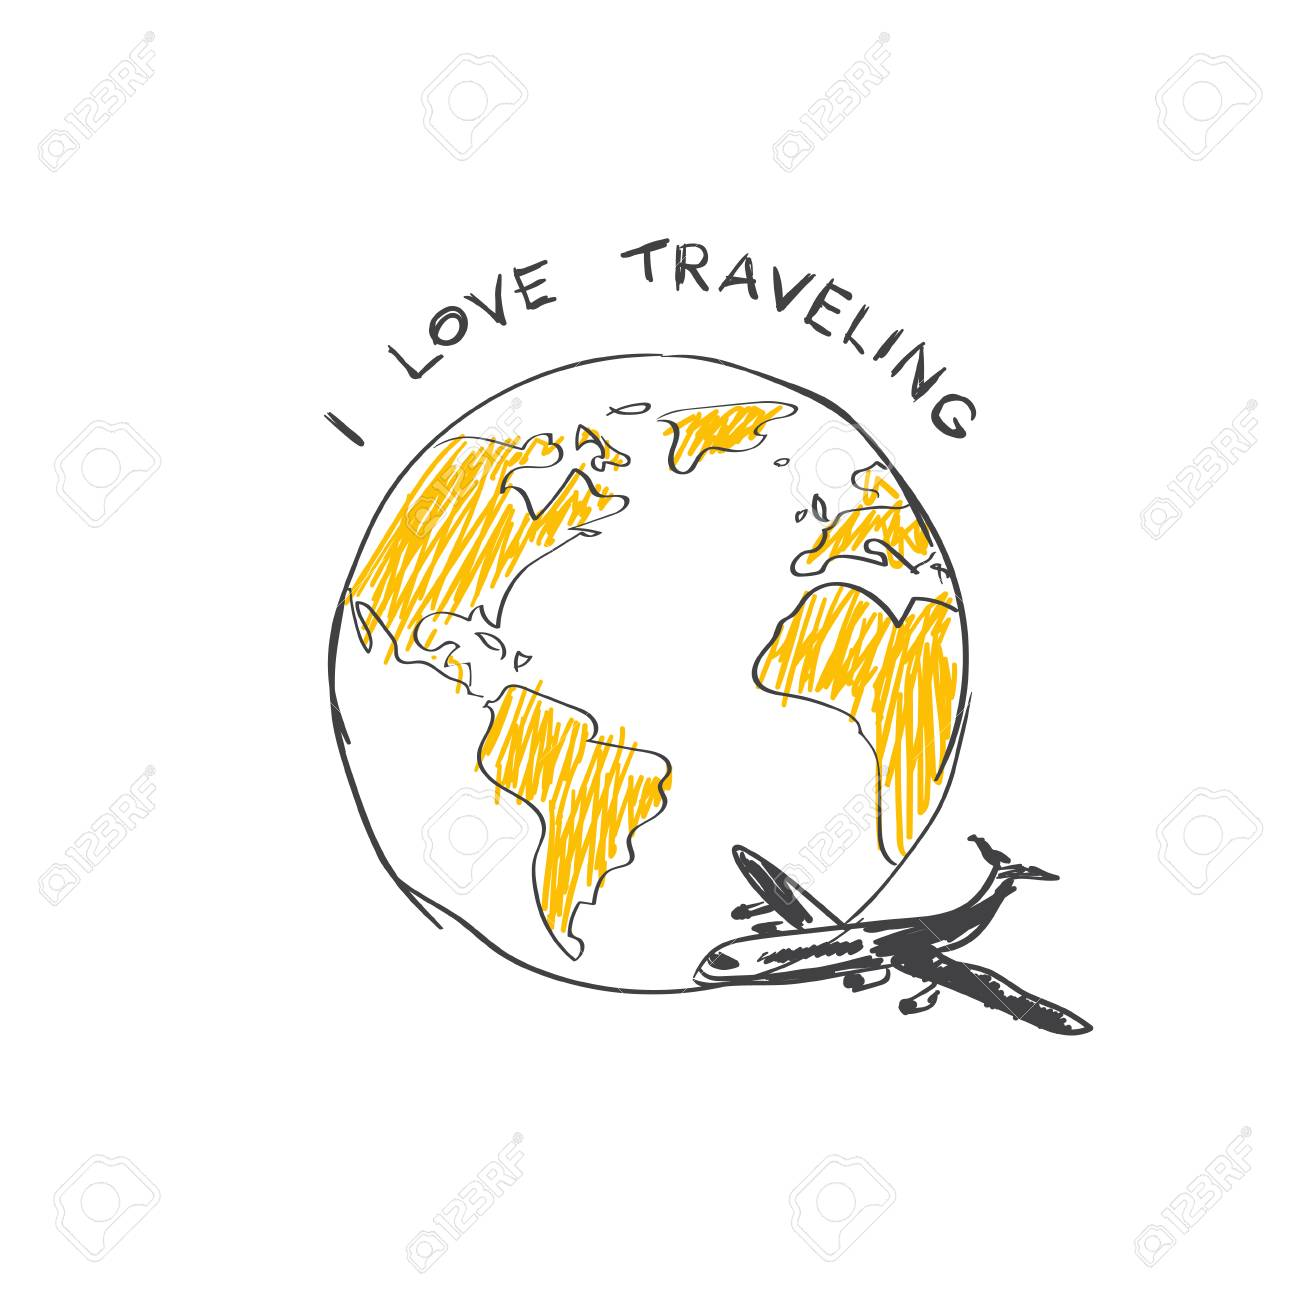 i love travelling quotes